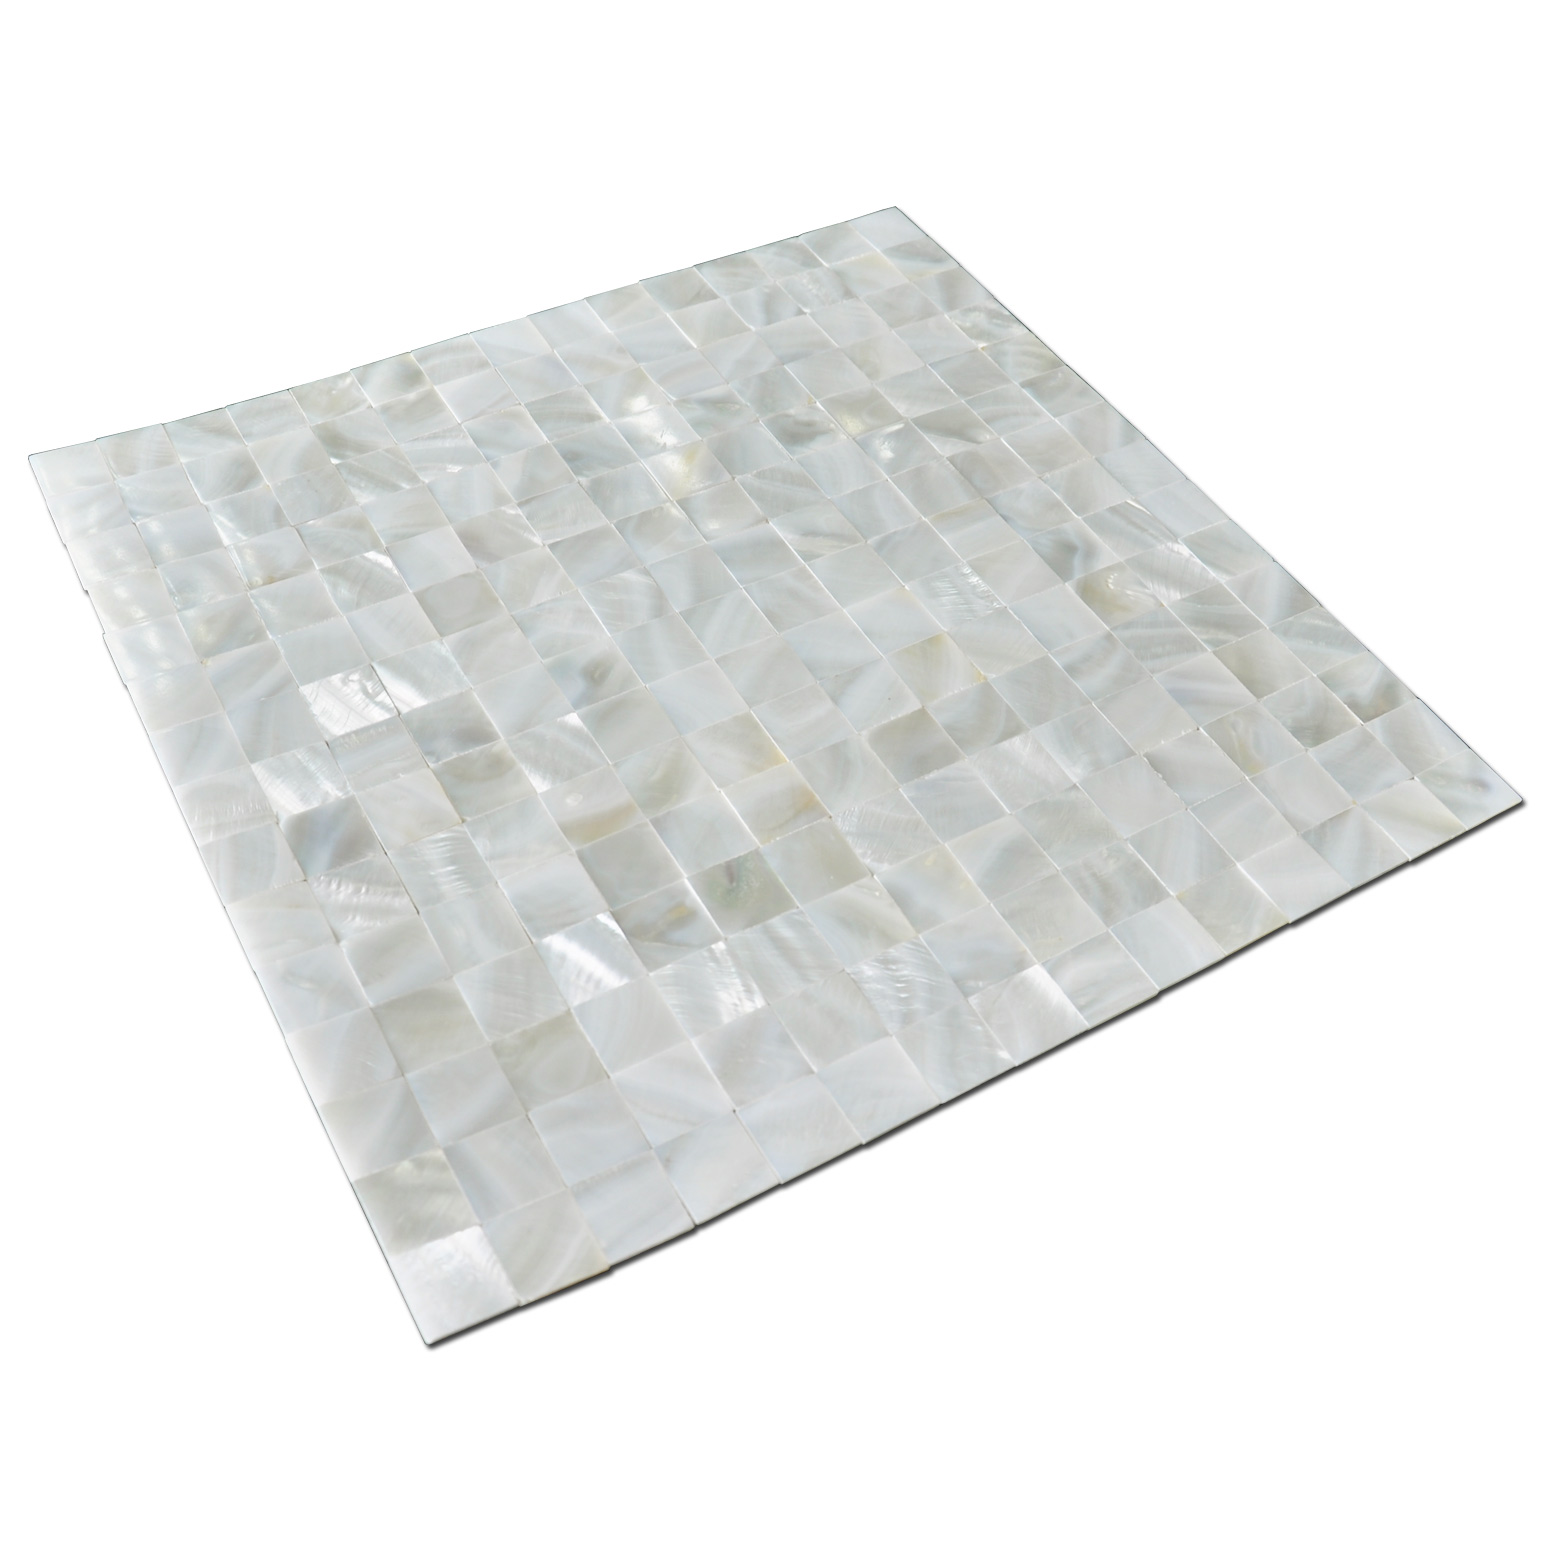 A18011 - Mother of Pearl Shell White Square Seamless Mosaic Tile, 12